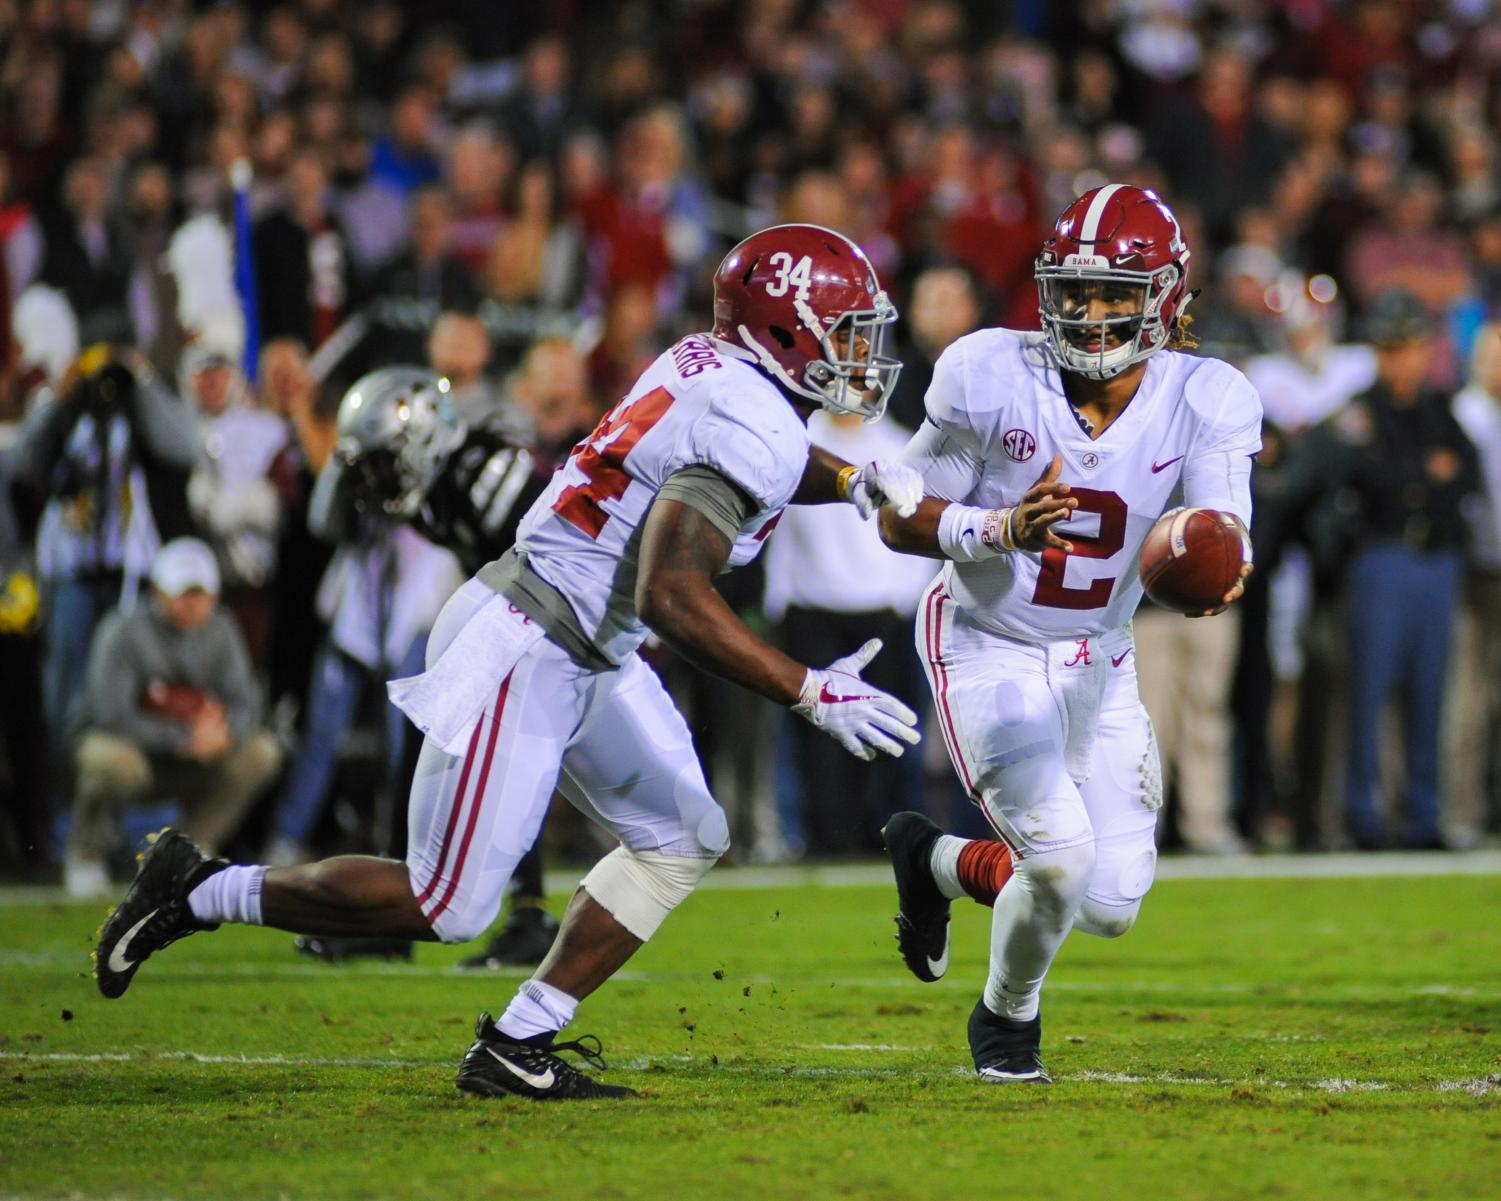 Alabama Crimson Tide quarterback Jalen Hurts (2) hands the ball off to running back Damien Harris (34) against Mississippi State.